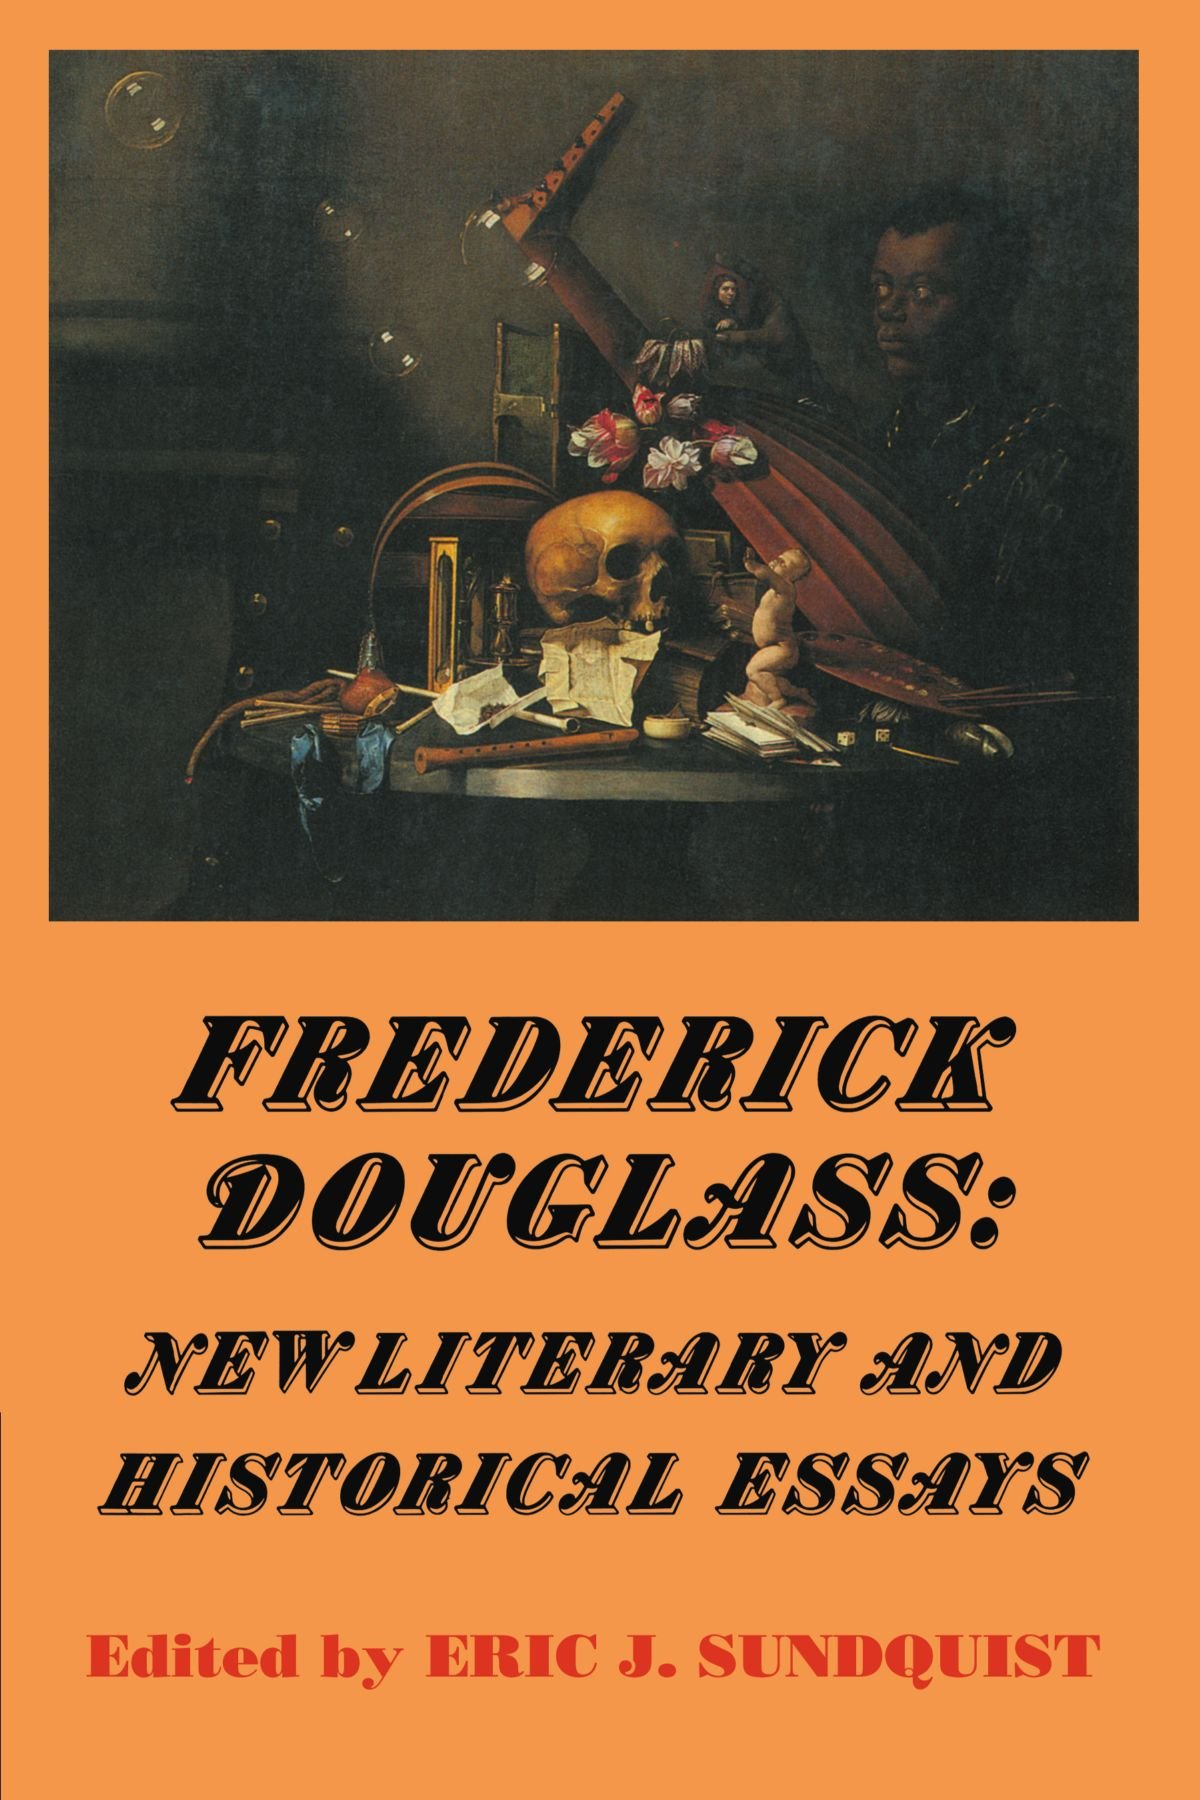 frederick douglass essay questions frederick douglass new literary  frederick douglass new literary and historical essays cambridge frederick douglass new literary and historical essays cambridge